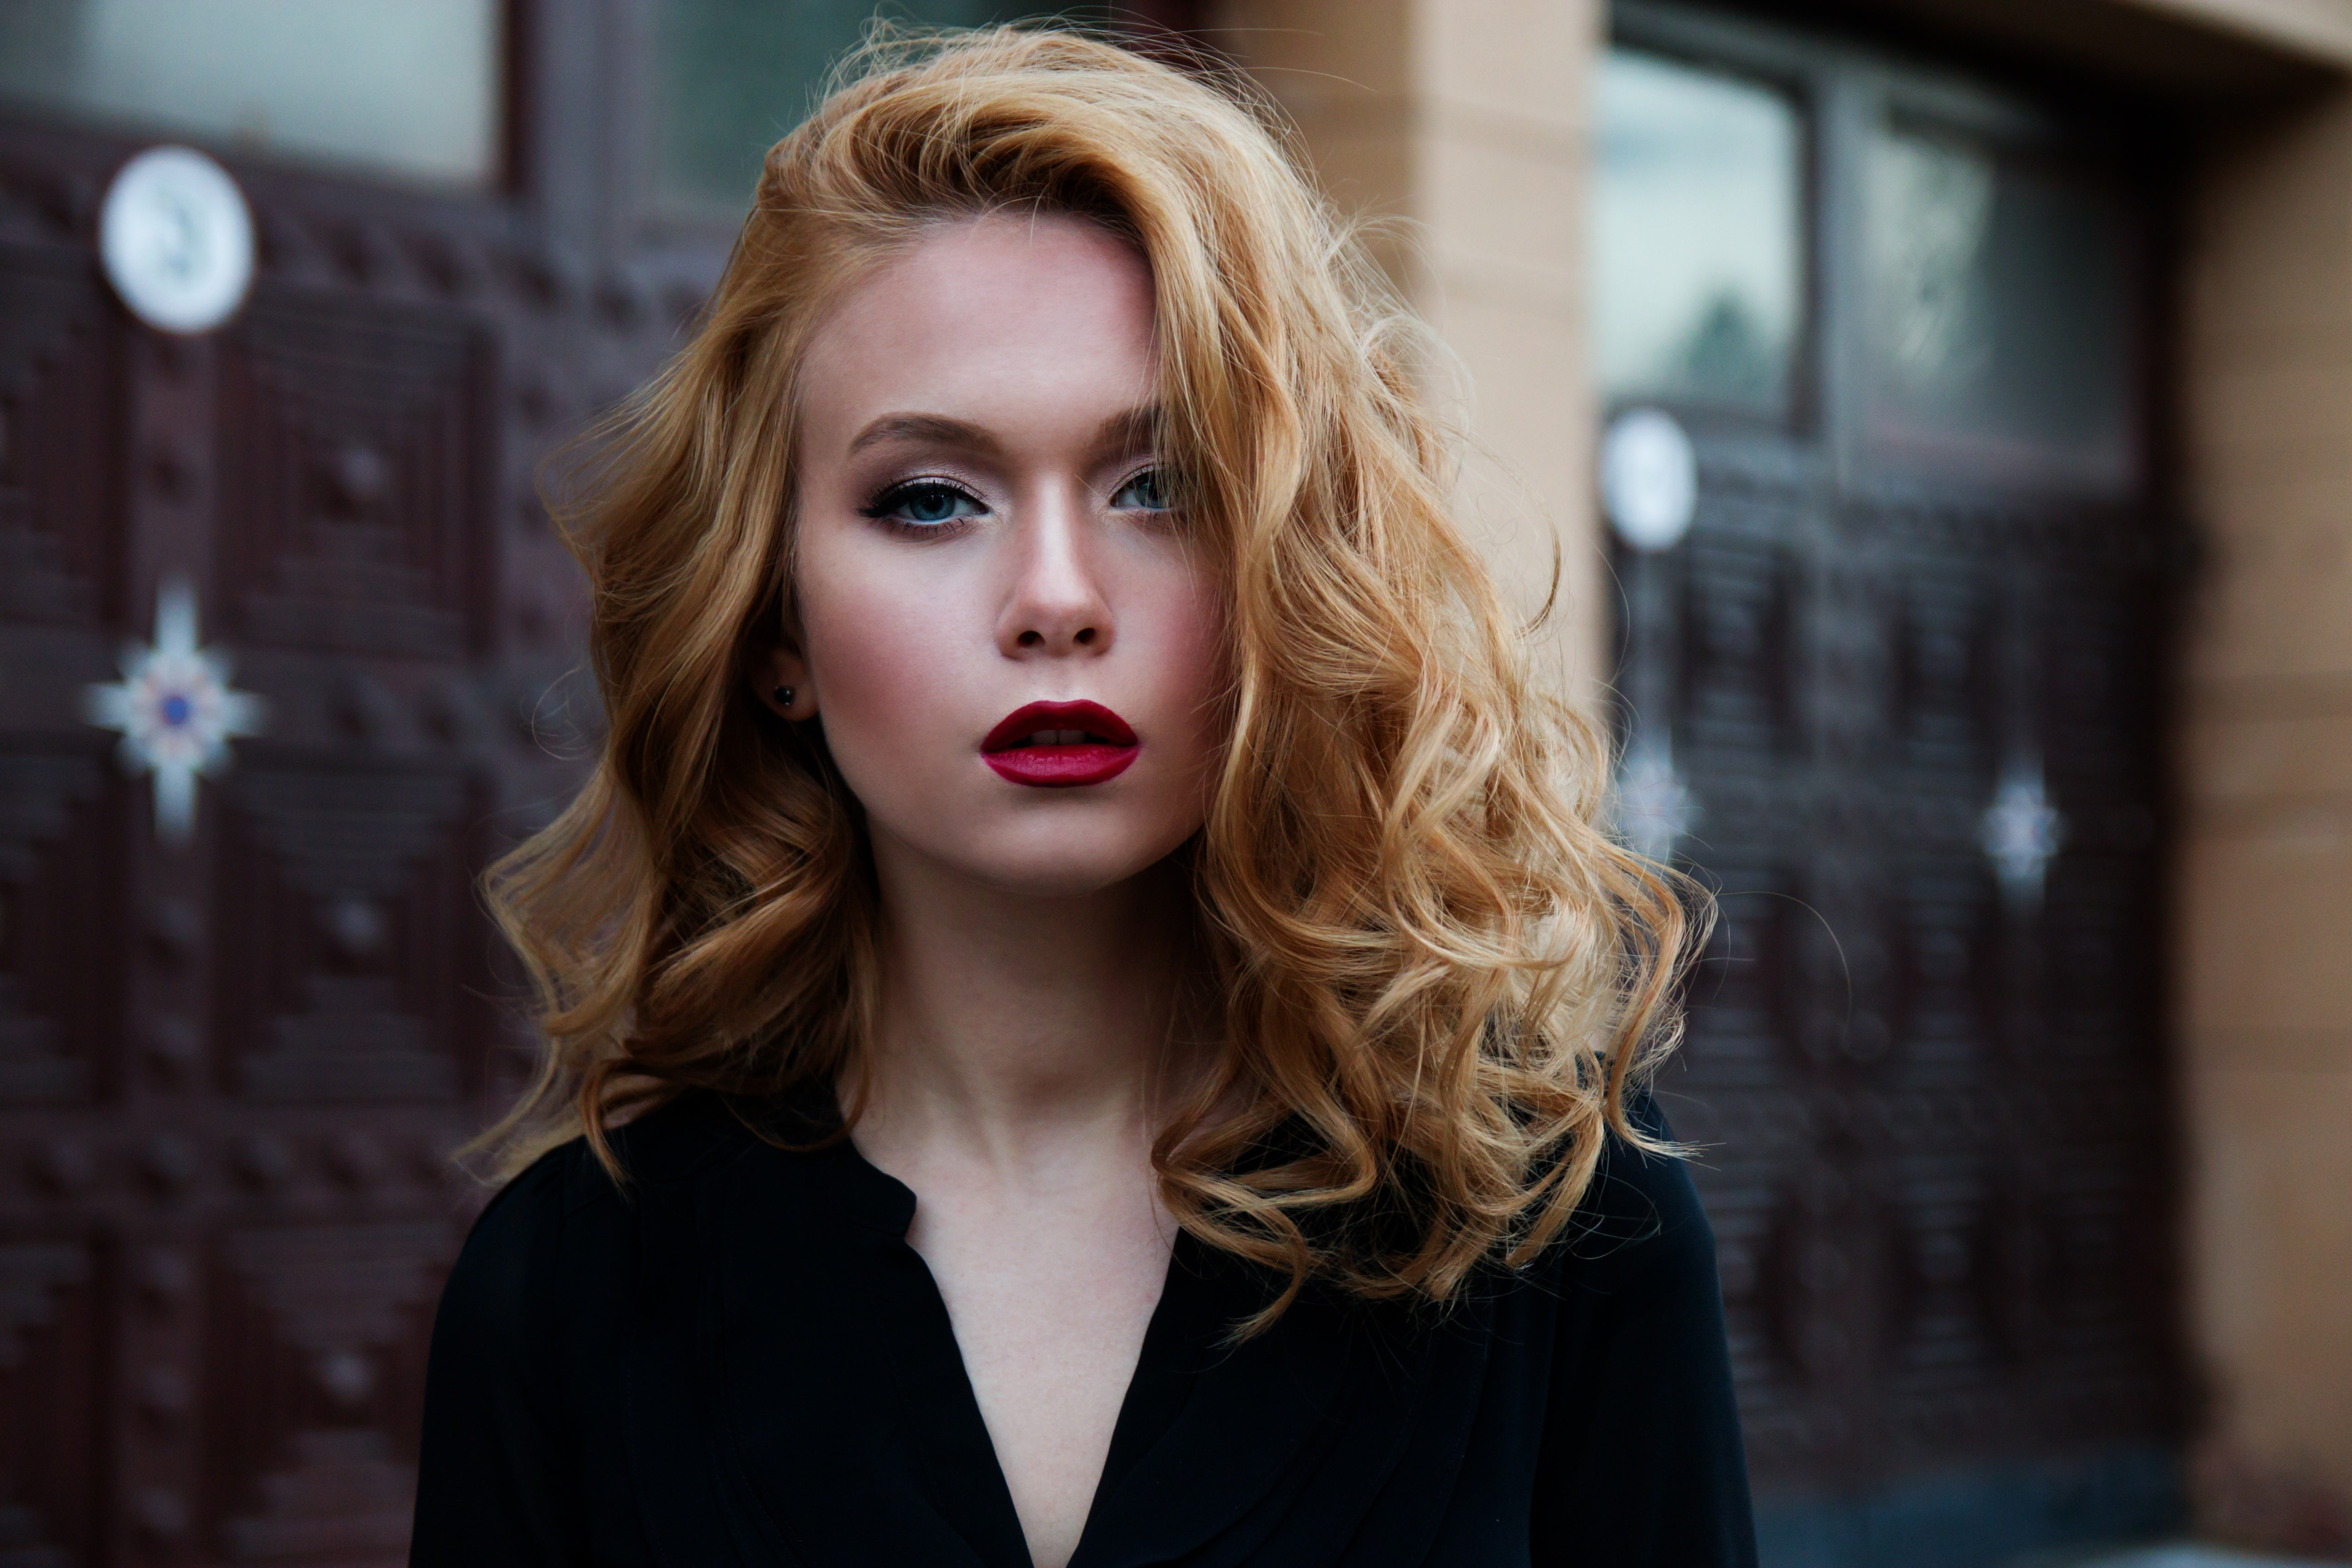 Hairstyles For Humidity : Best monsoon hairstyles style & beauty idiva